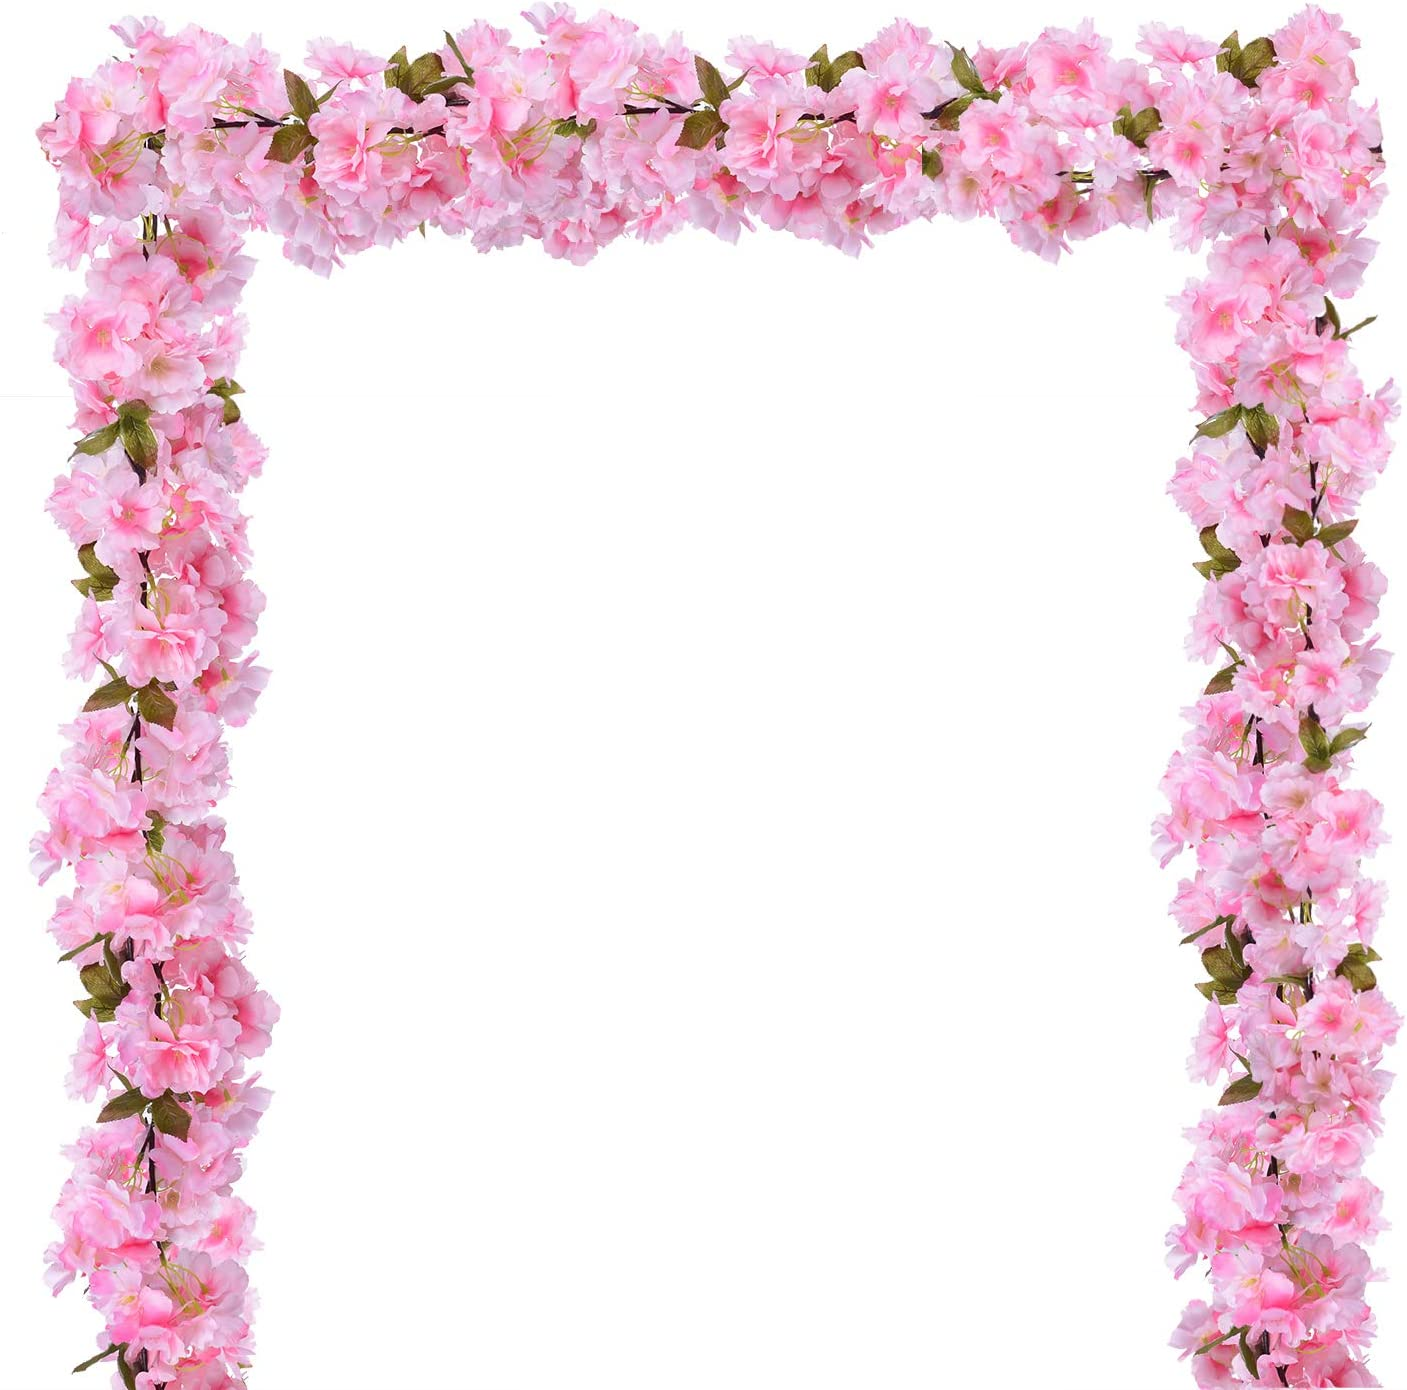 DearHouse 2 Pack Artificial Cherry Blossom Garland Hanging Vine Faux Cherry Blossom Flowers Garland for Home Garden Wedding Party Decor,Pink